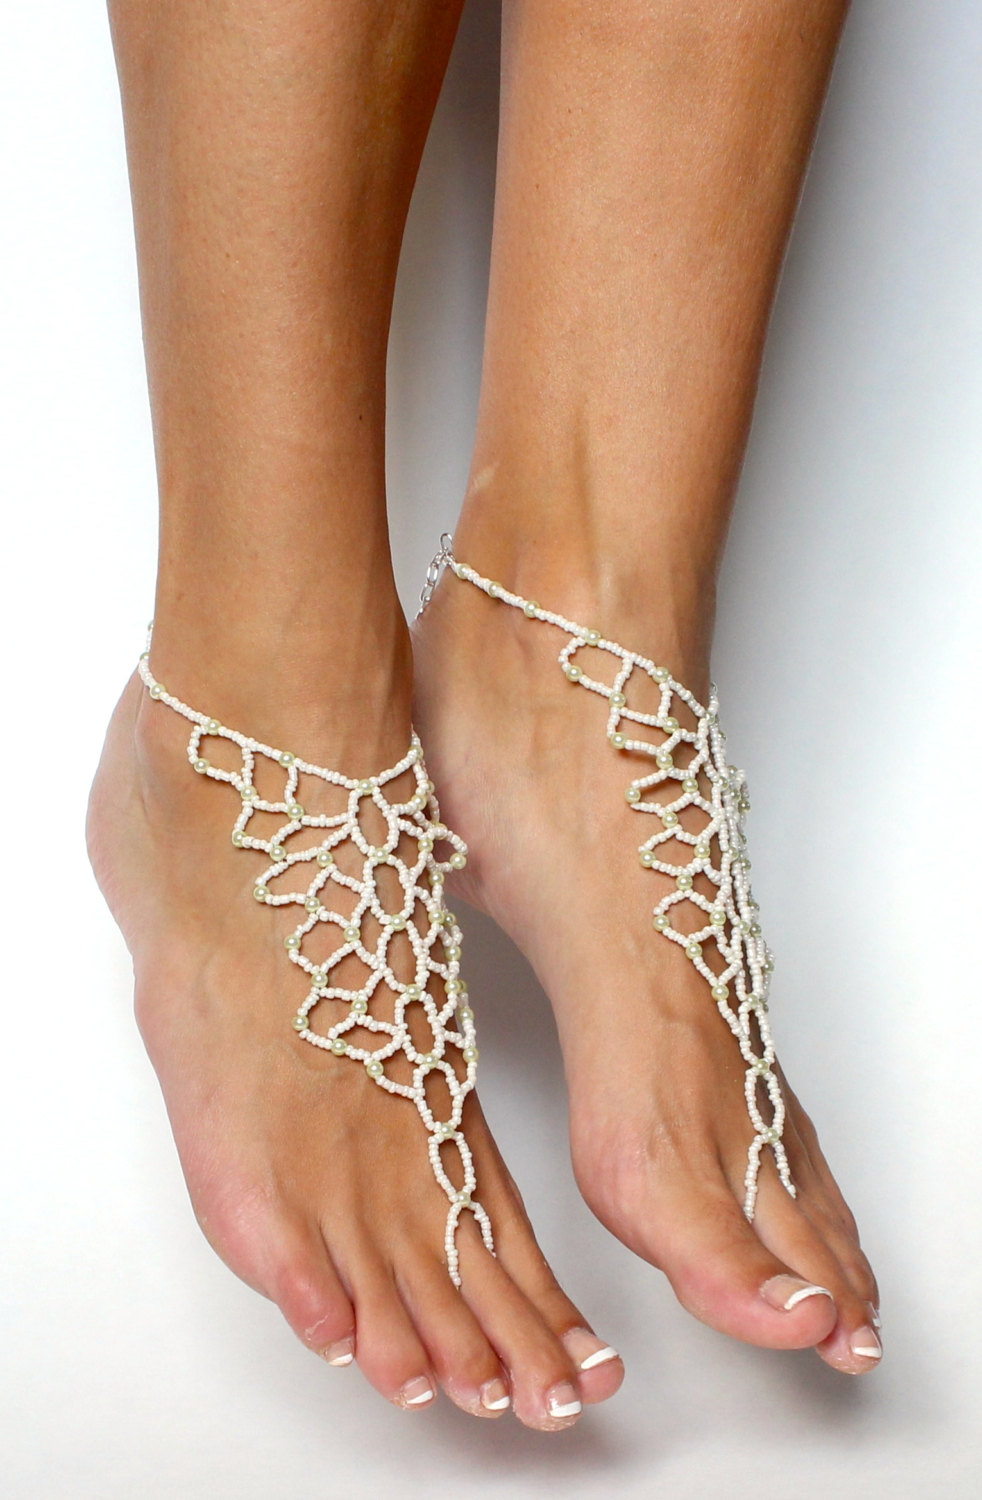 Bridal Jewelry Barefoot Sandals Wedding Foot Anklet Sandles For A Beach In Snow